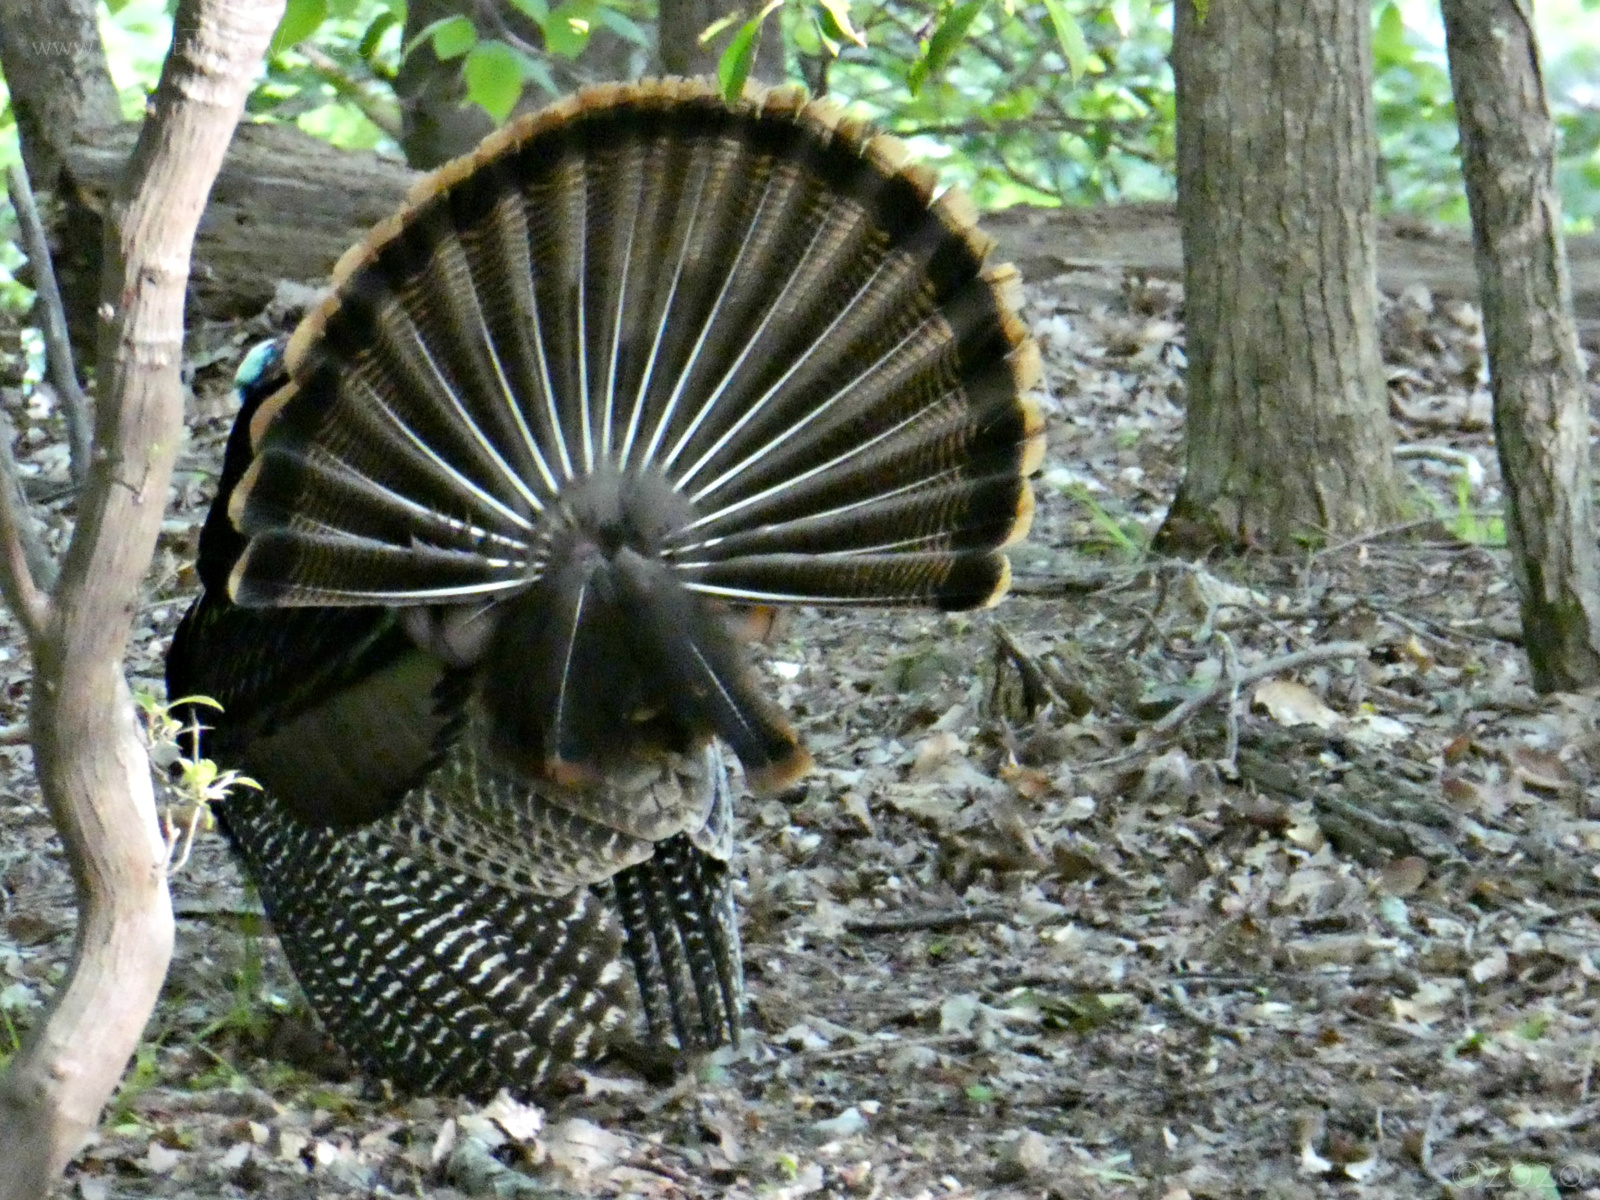 April 28, 2020 - Wild Turkey in Bent Tree